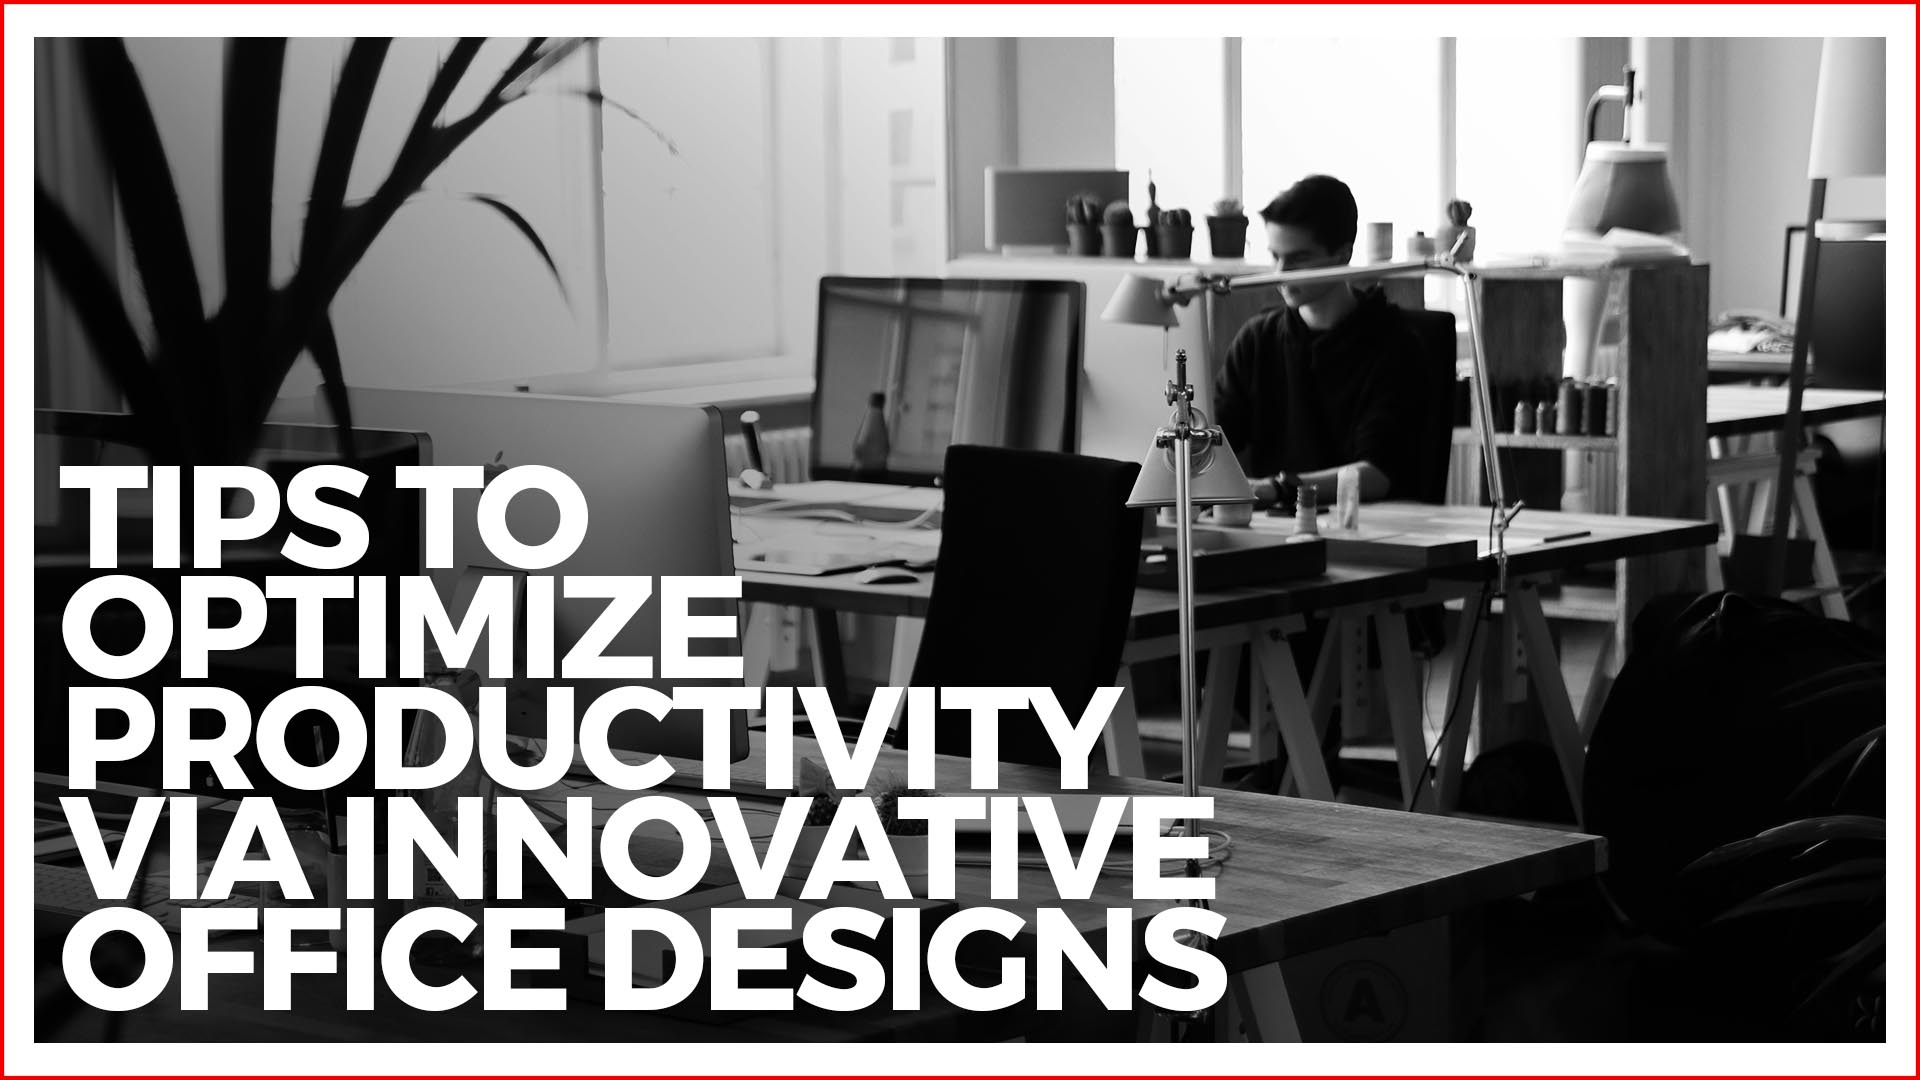 Top 5 Tips To Optimize Productivity Via Innovative Office Designs